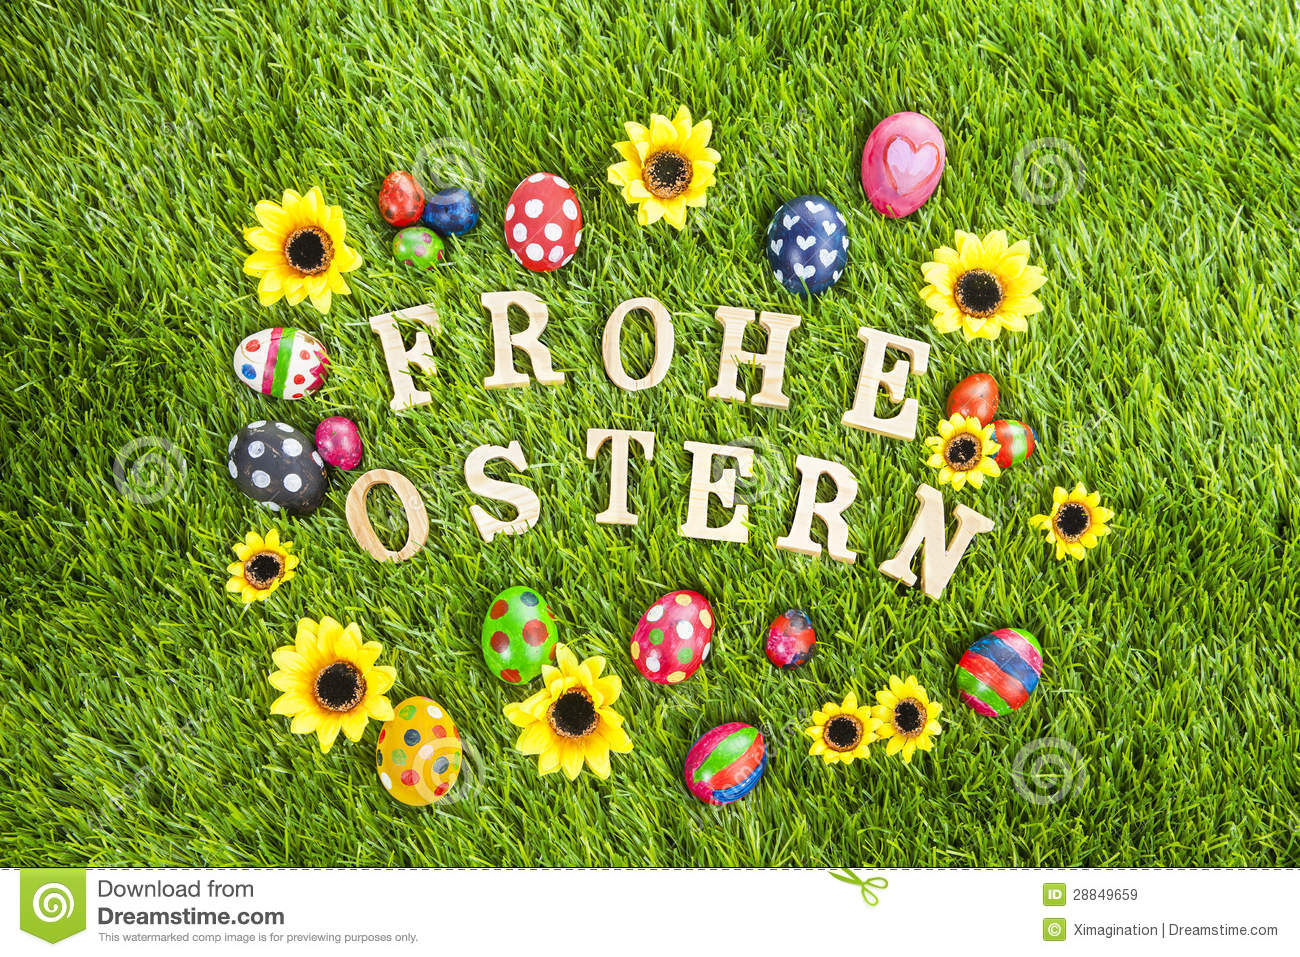 Frohe Ostern Eggs On Grass Royalty Free Stock Images - Image: 28849659